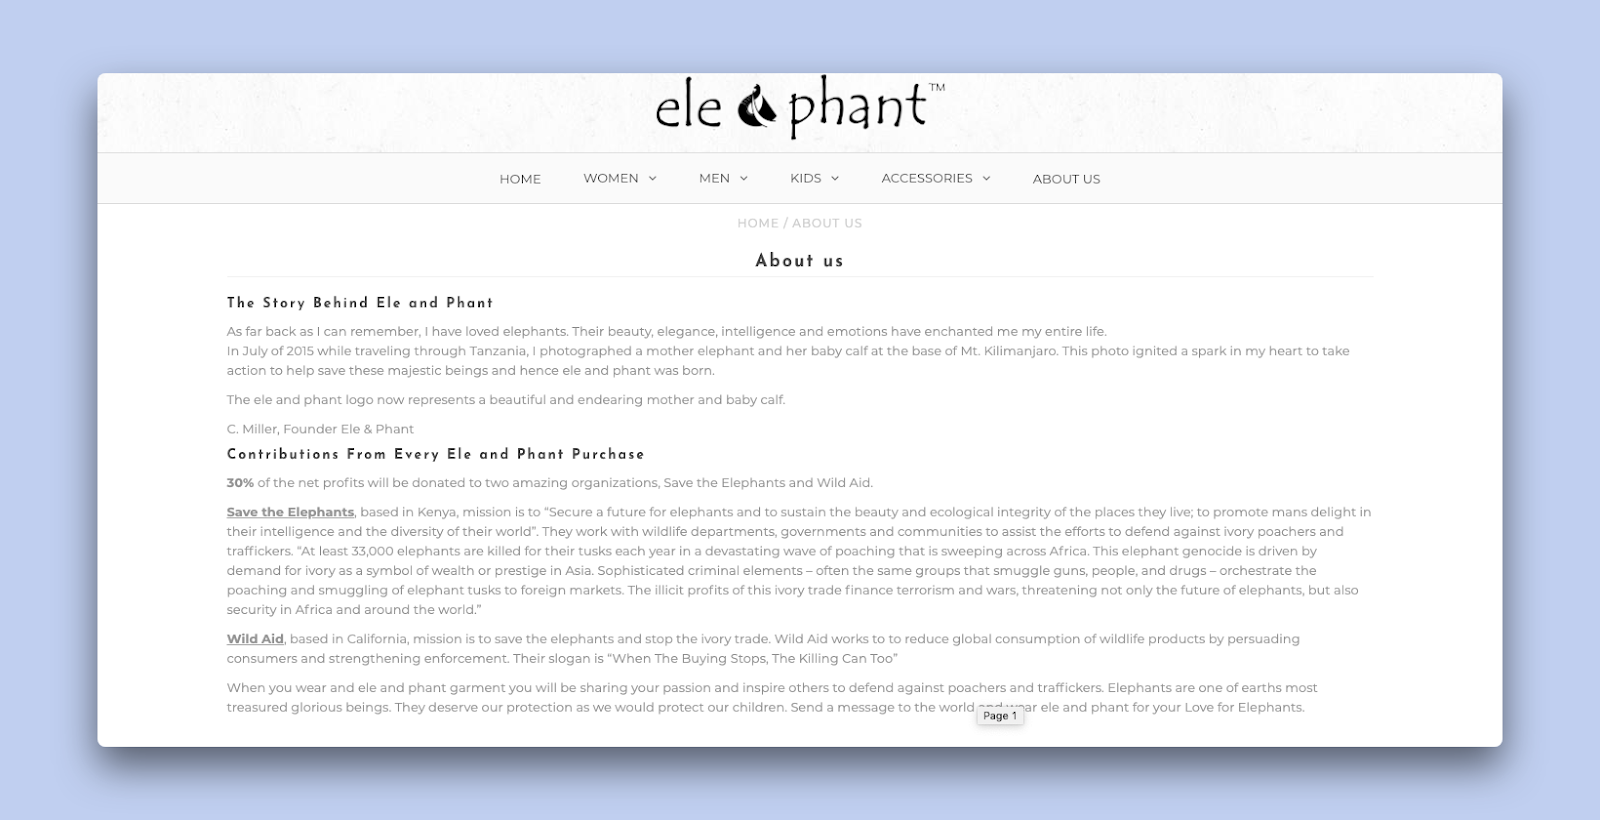 The About us page of the clothing store ele and phant which contributes to the welfare of elephants